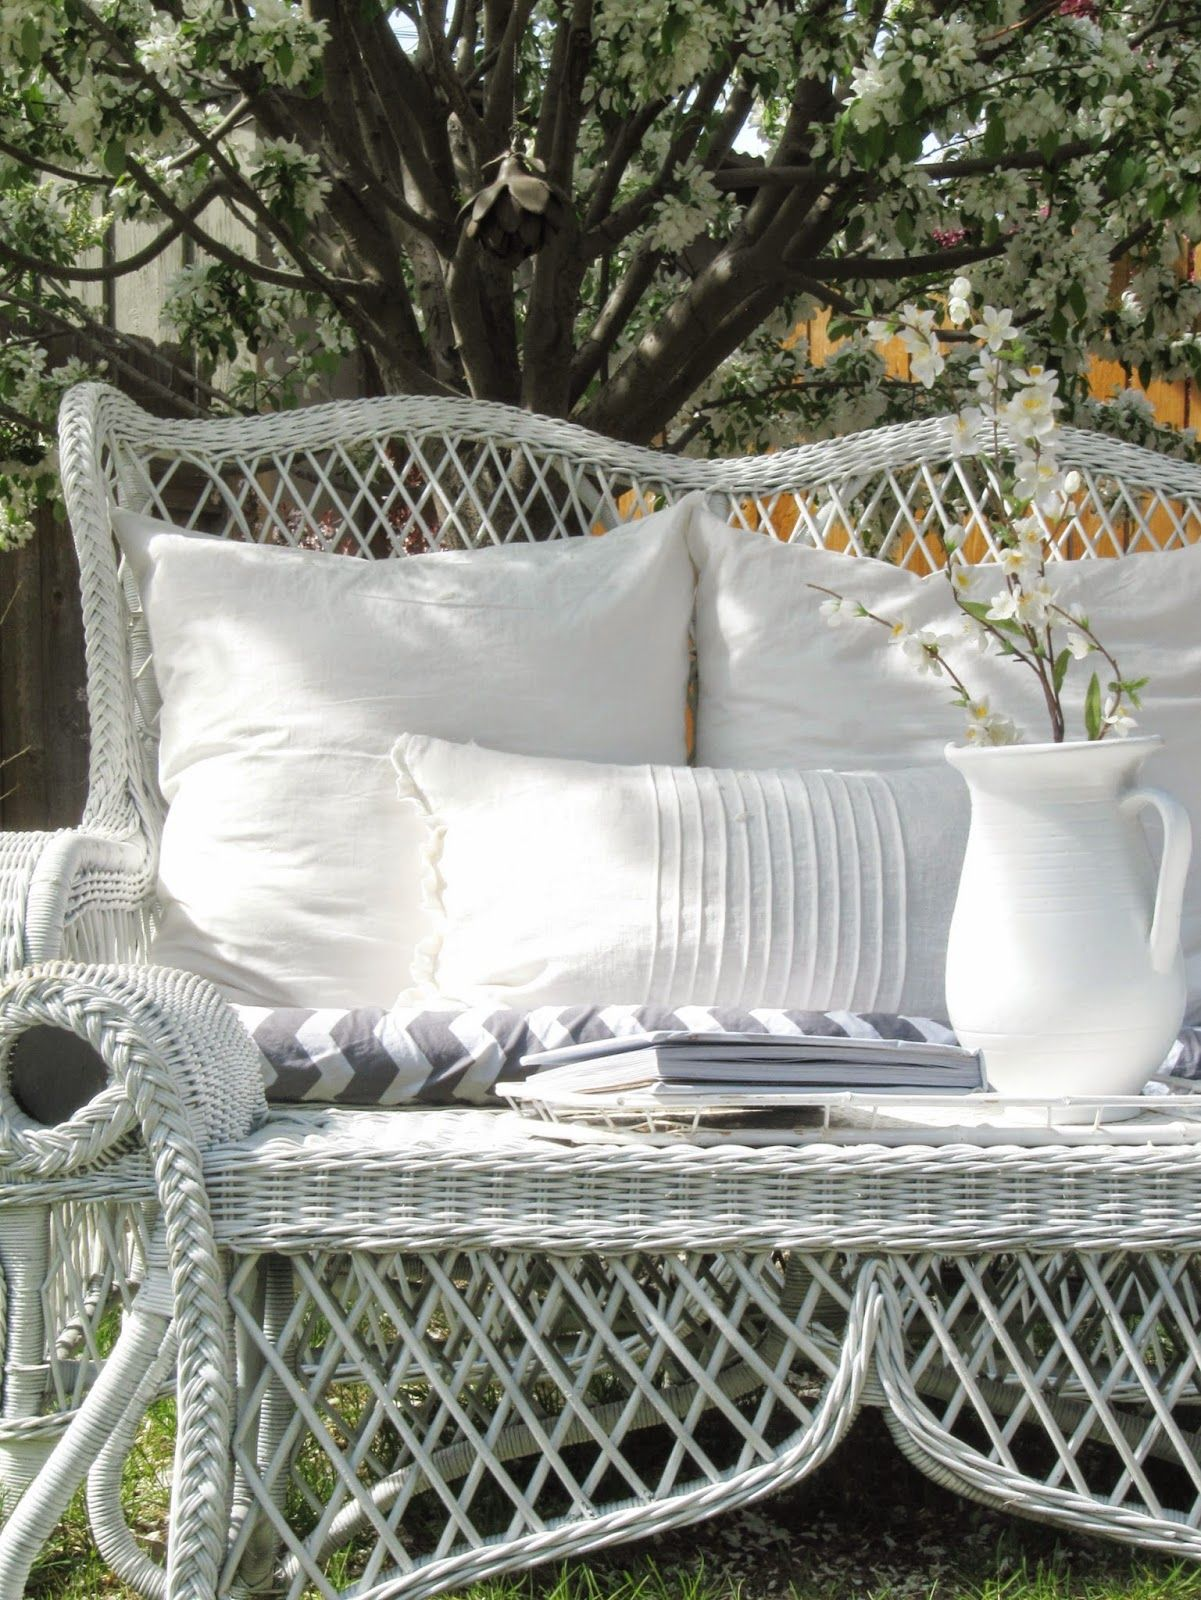 The Wicker House White Blossoms and Wicker